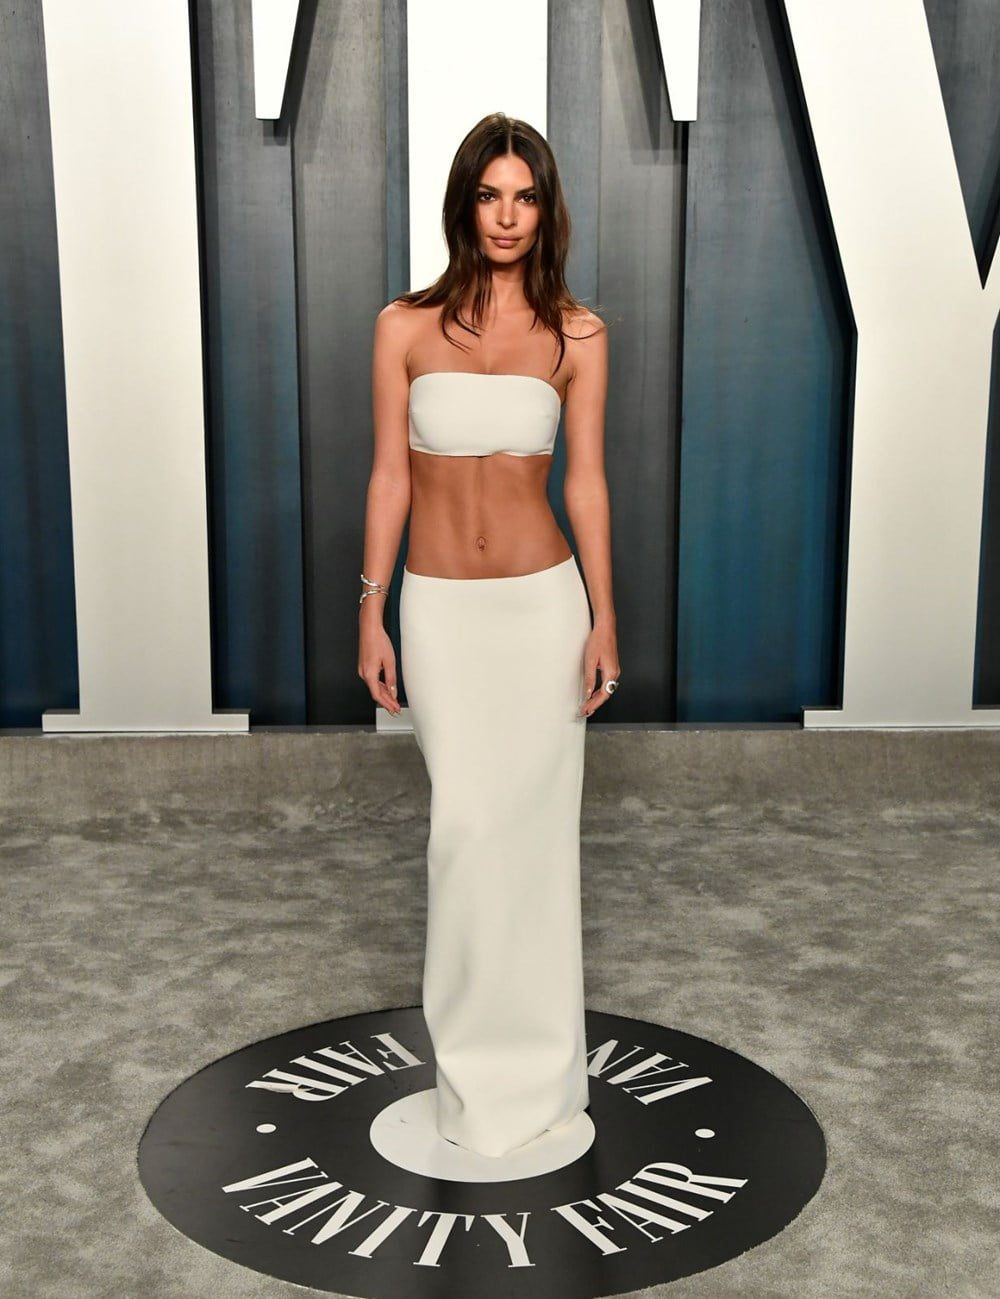 Photos of the popular American model Emily Ratajkowski with her nude work 13